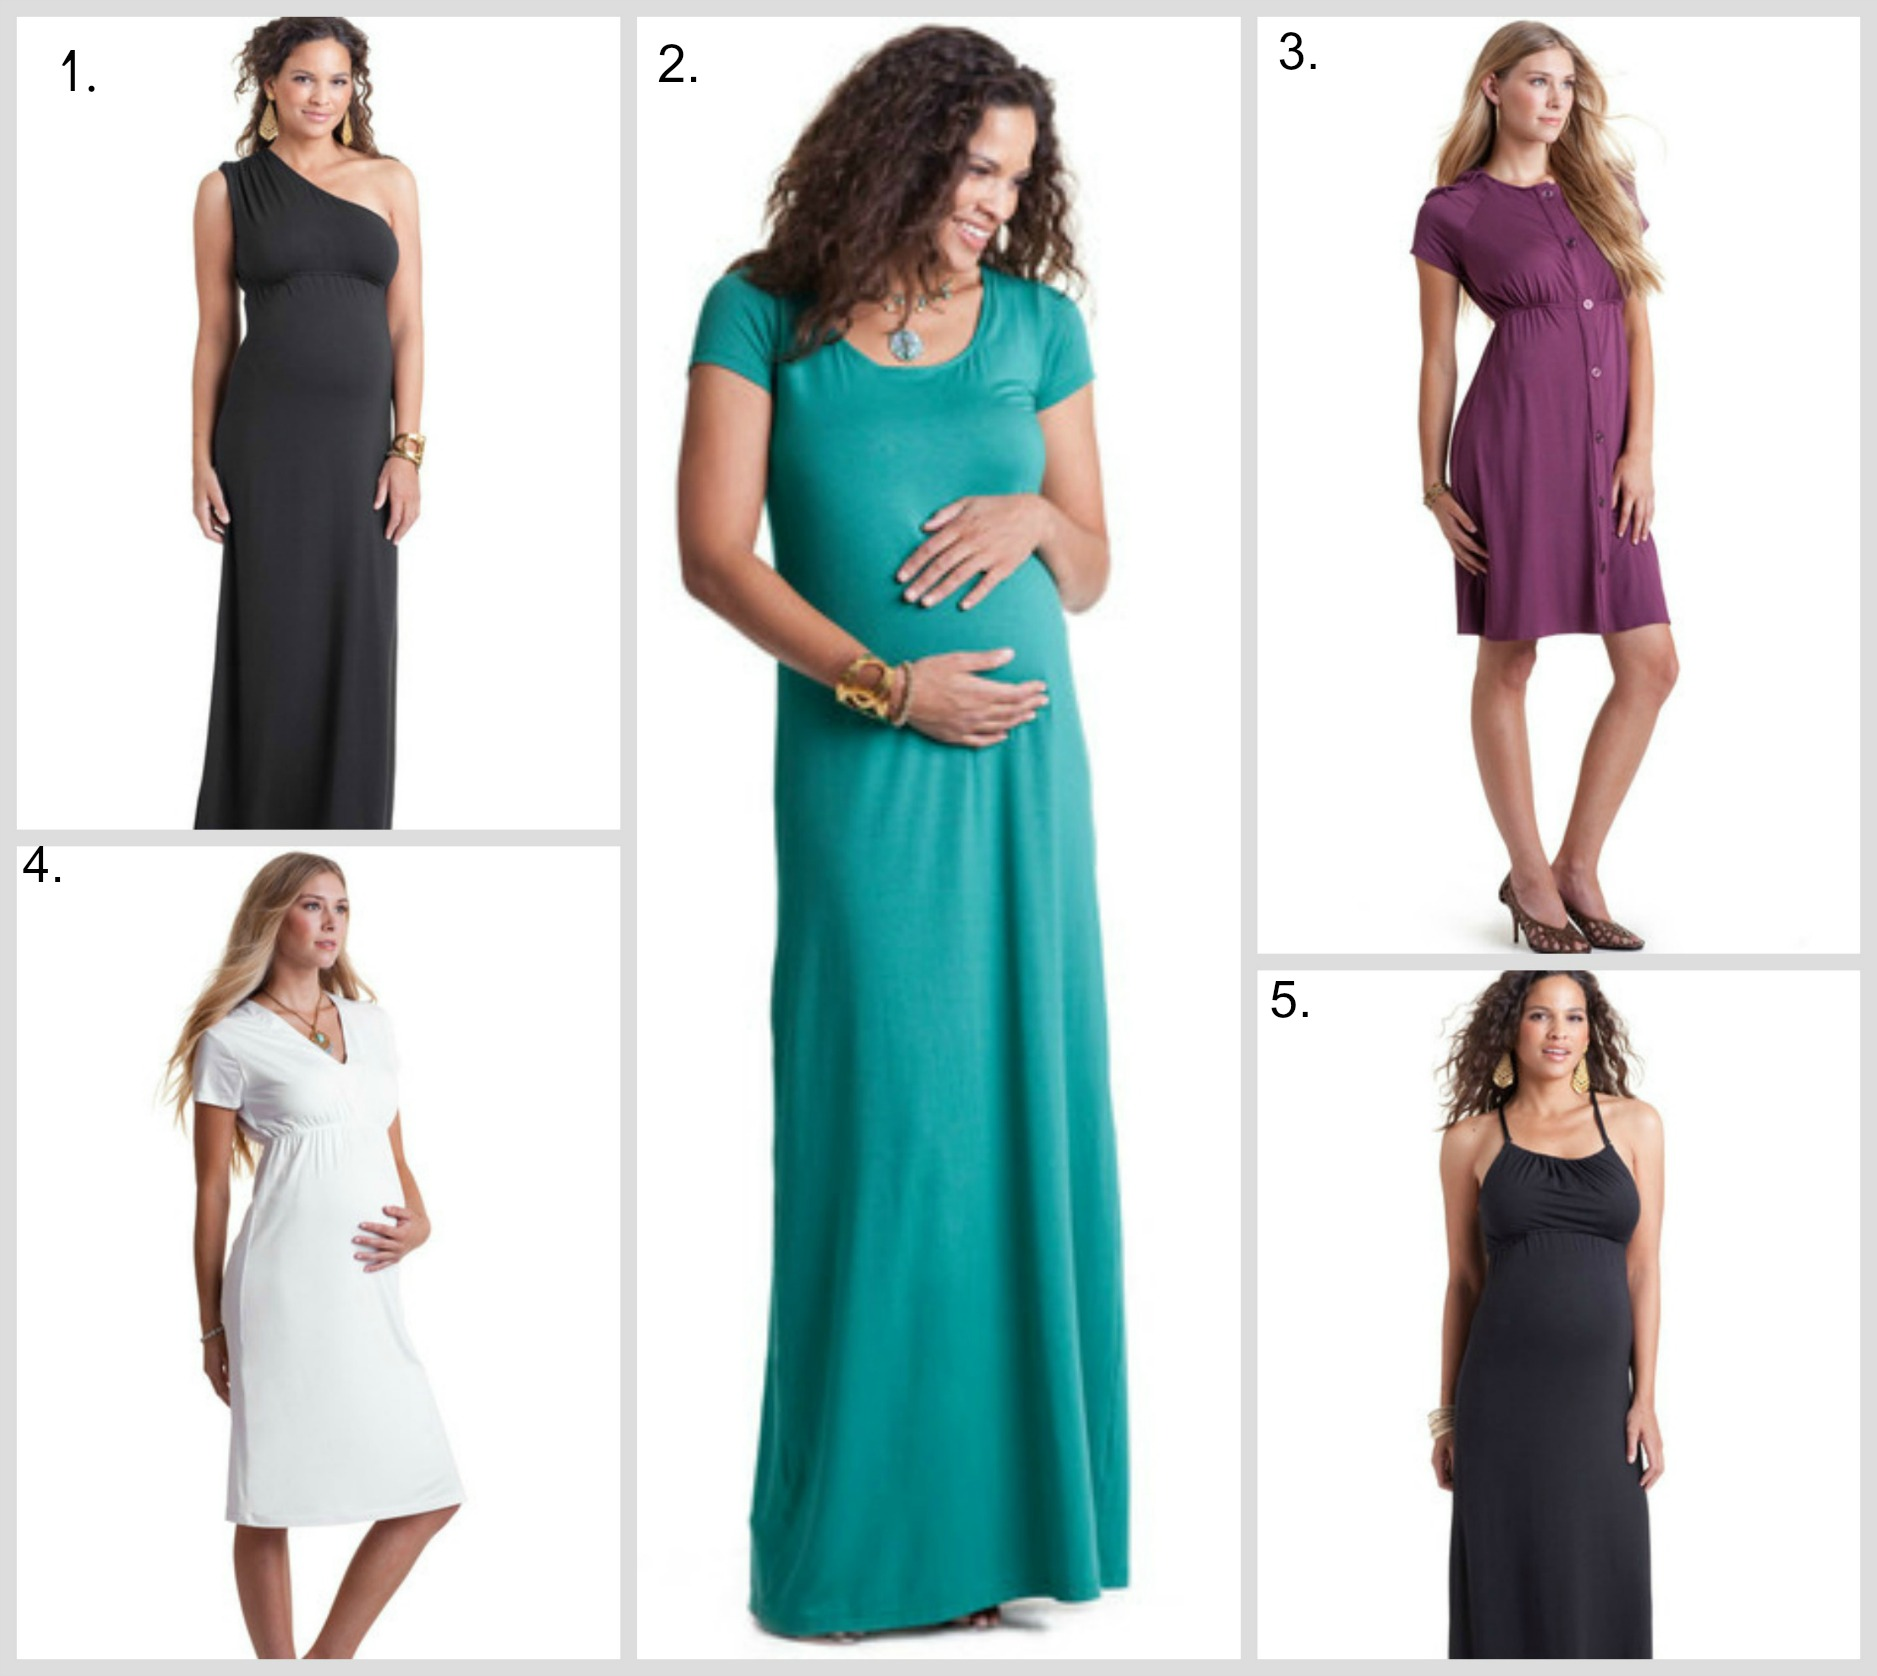 Joiful Maternity - Chic Summer Dresses - Savvy Sassy Moms